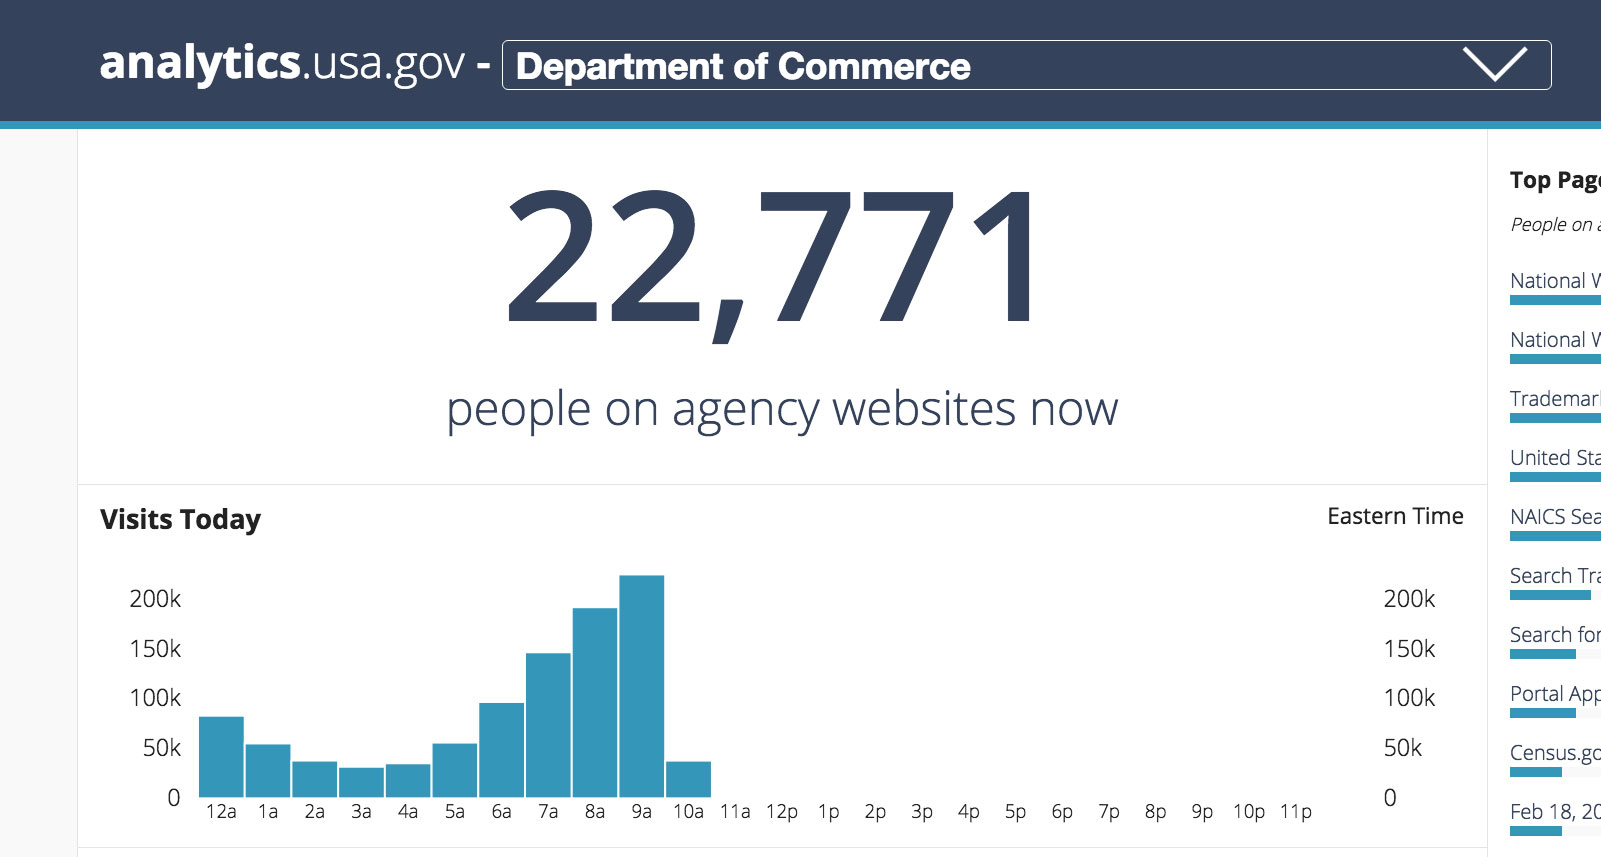 The analytics dashboard for the Department of Commerce